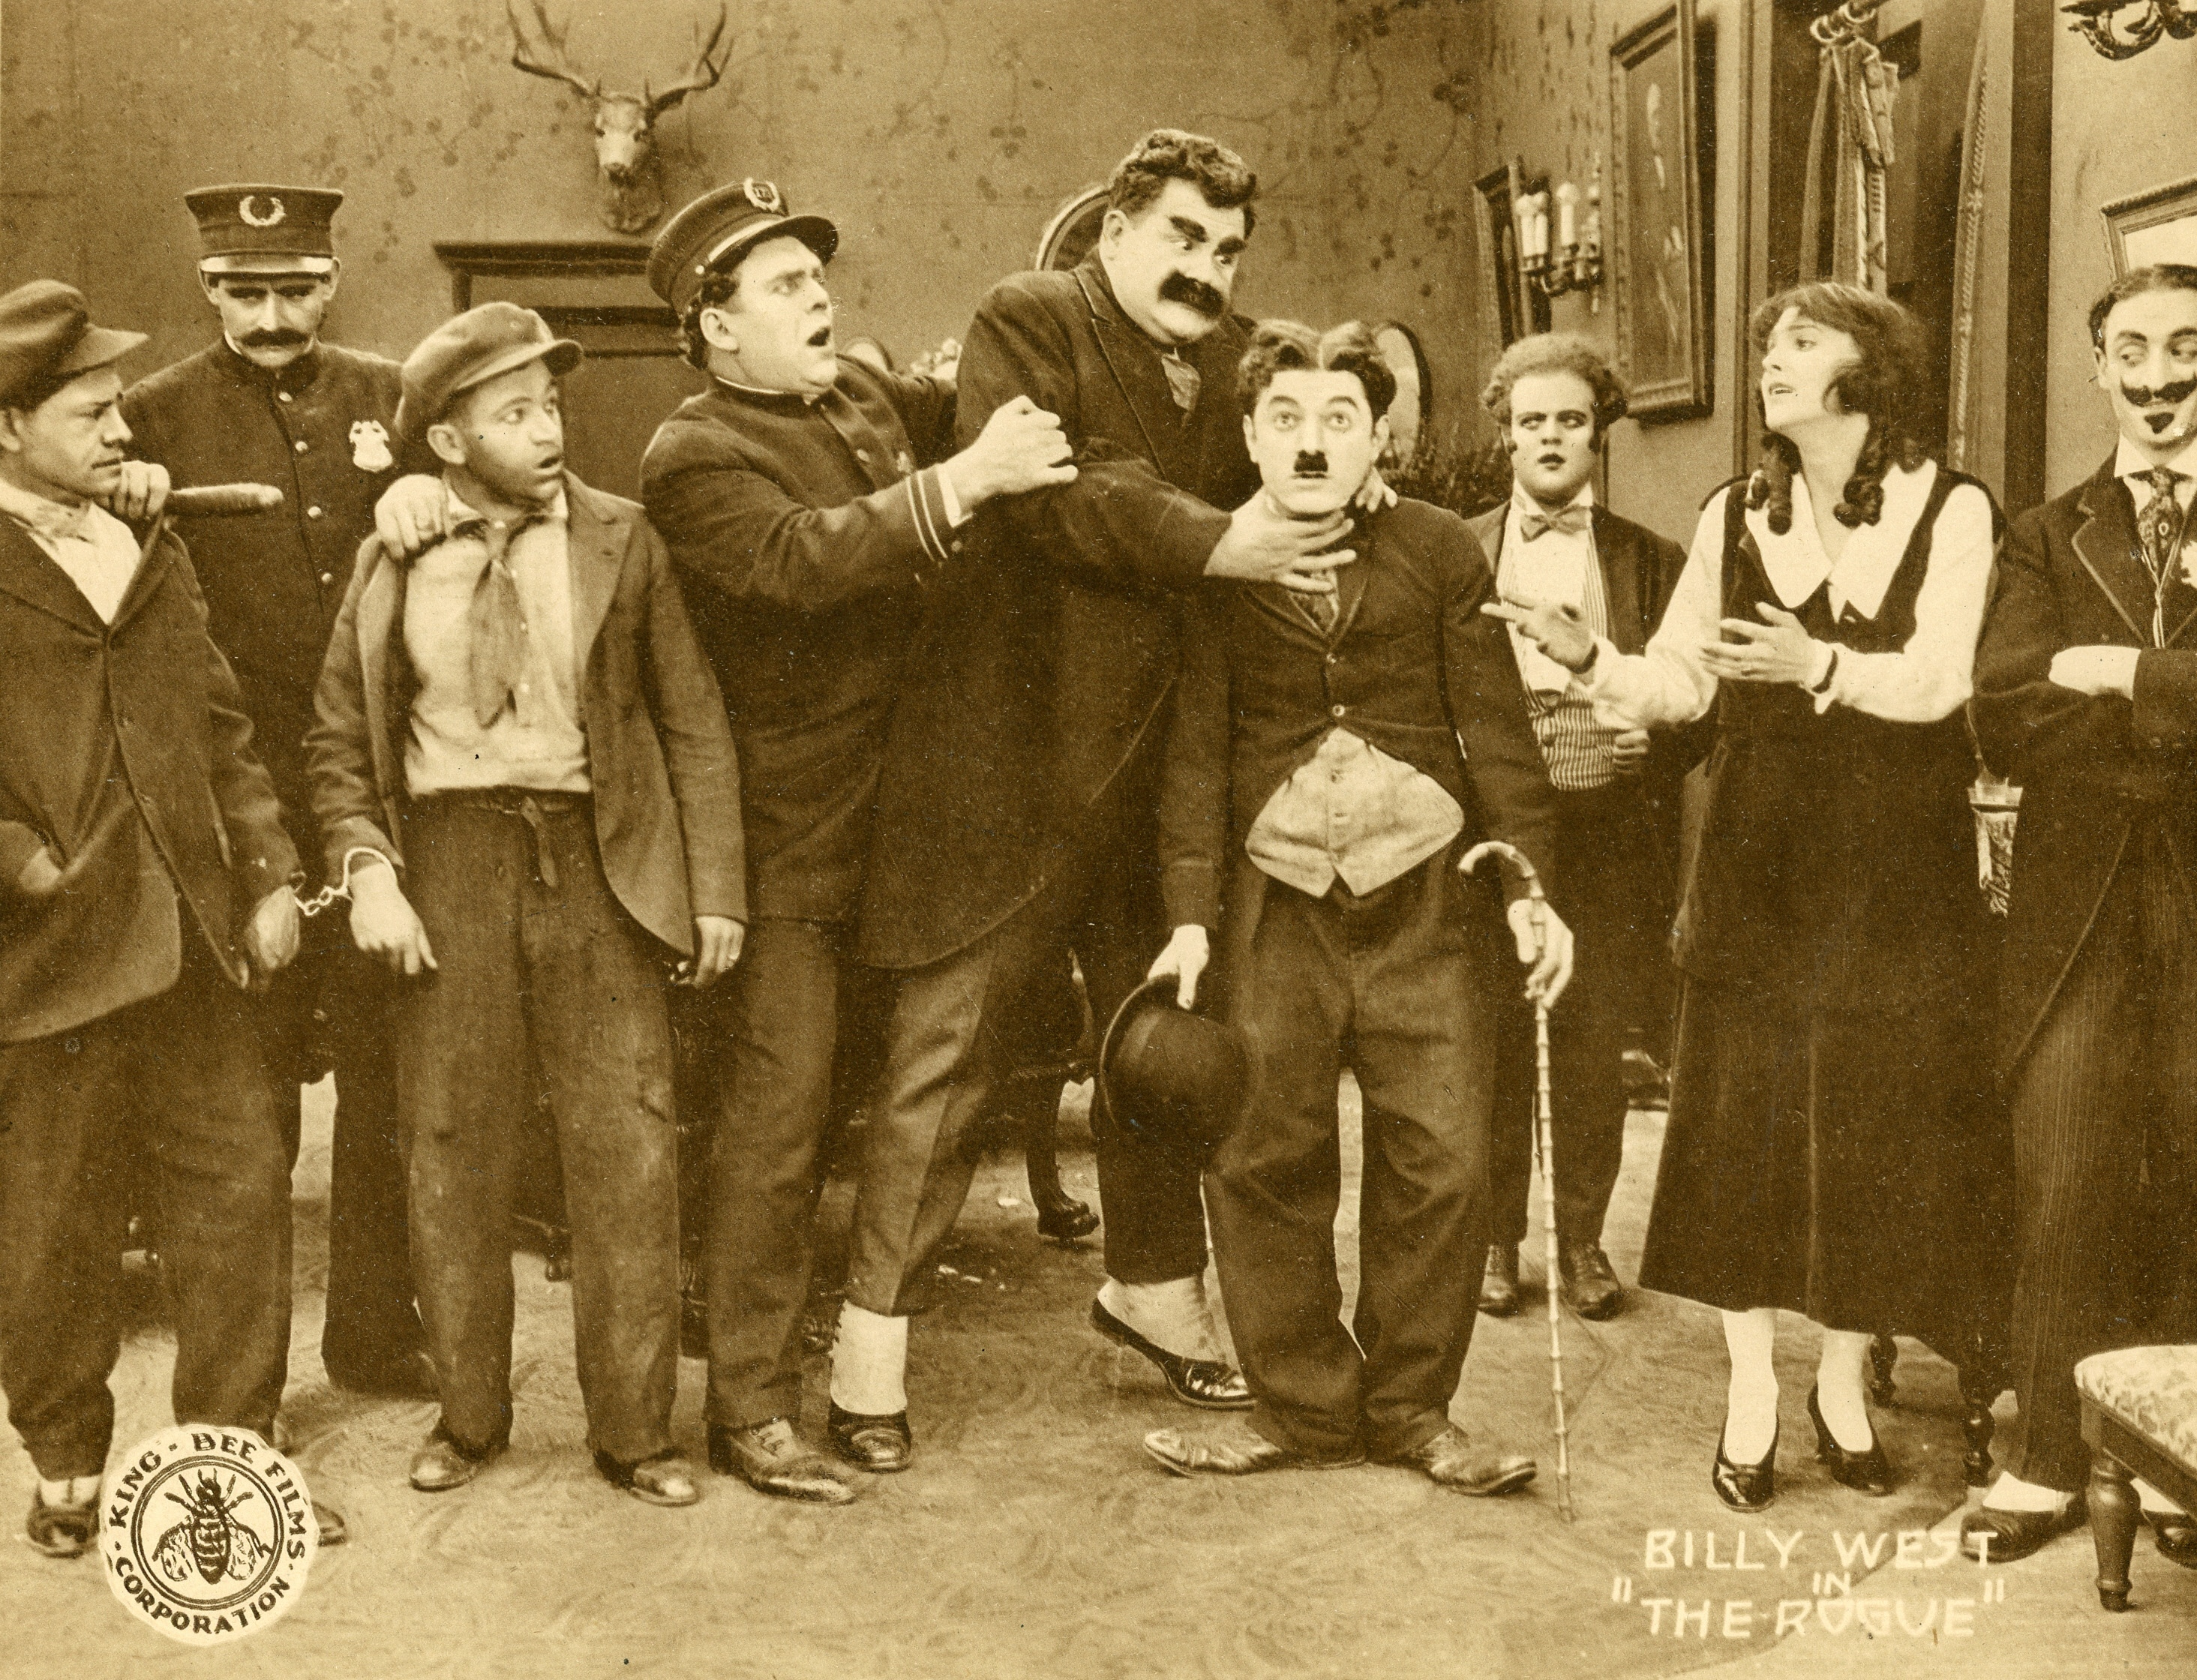 Billy West (silent Film Actor) silent film comedian Billy